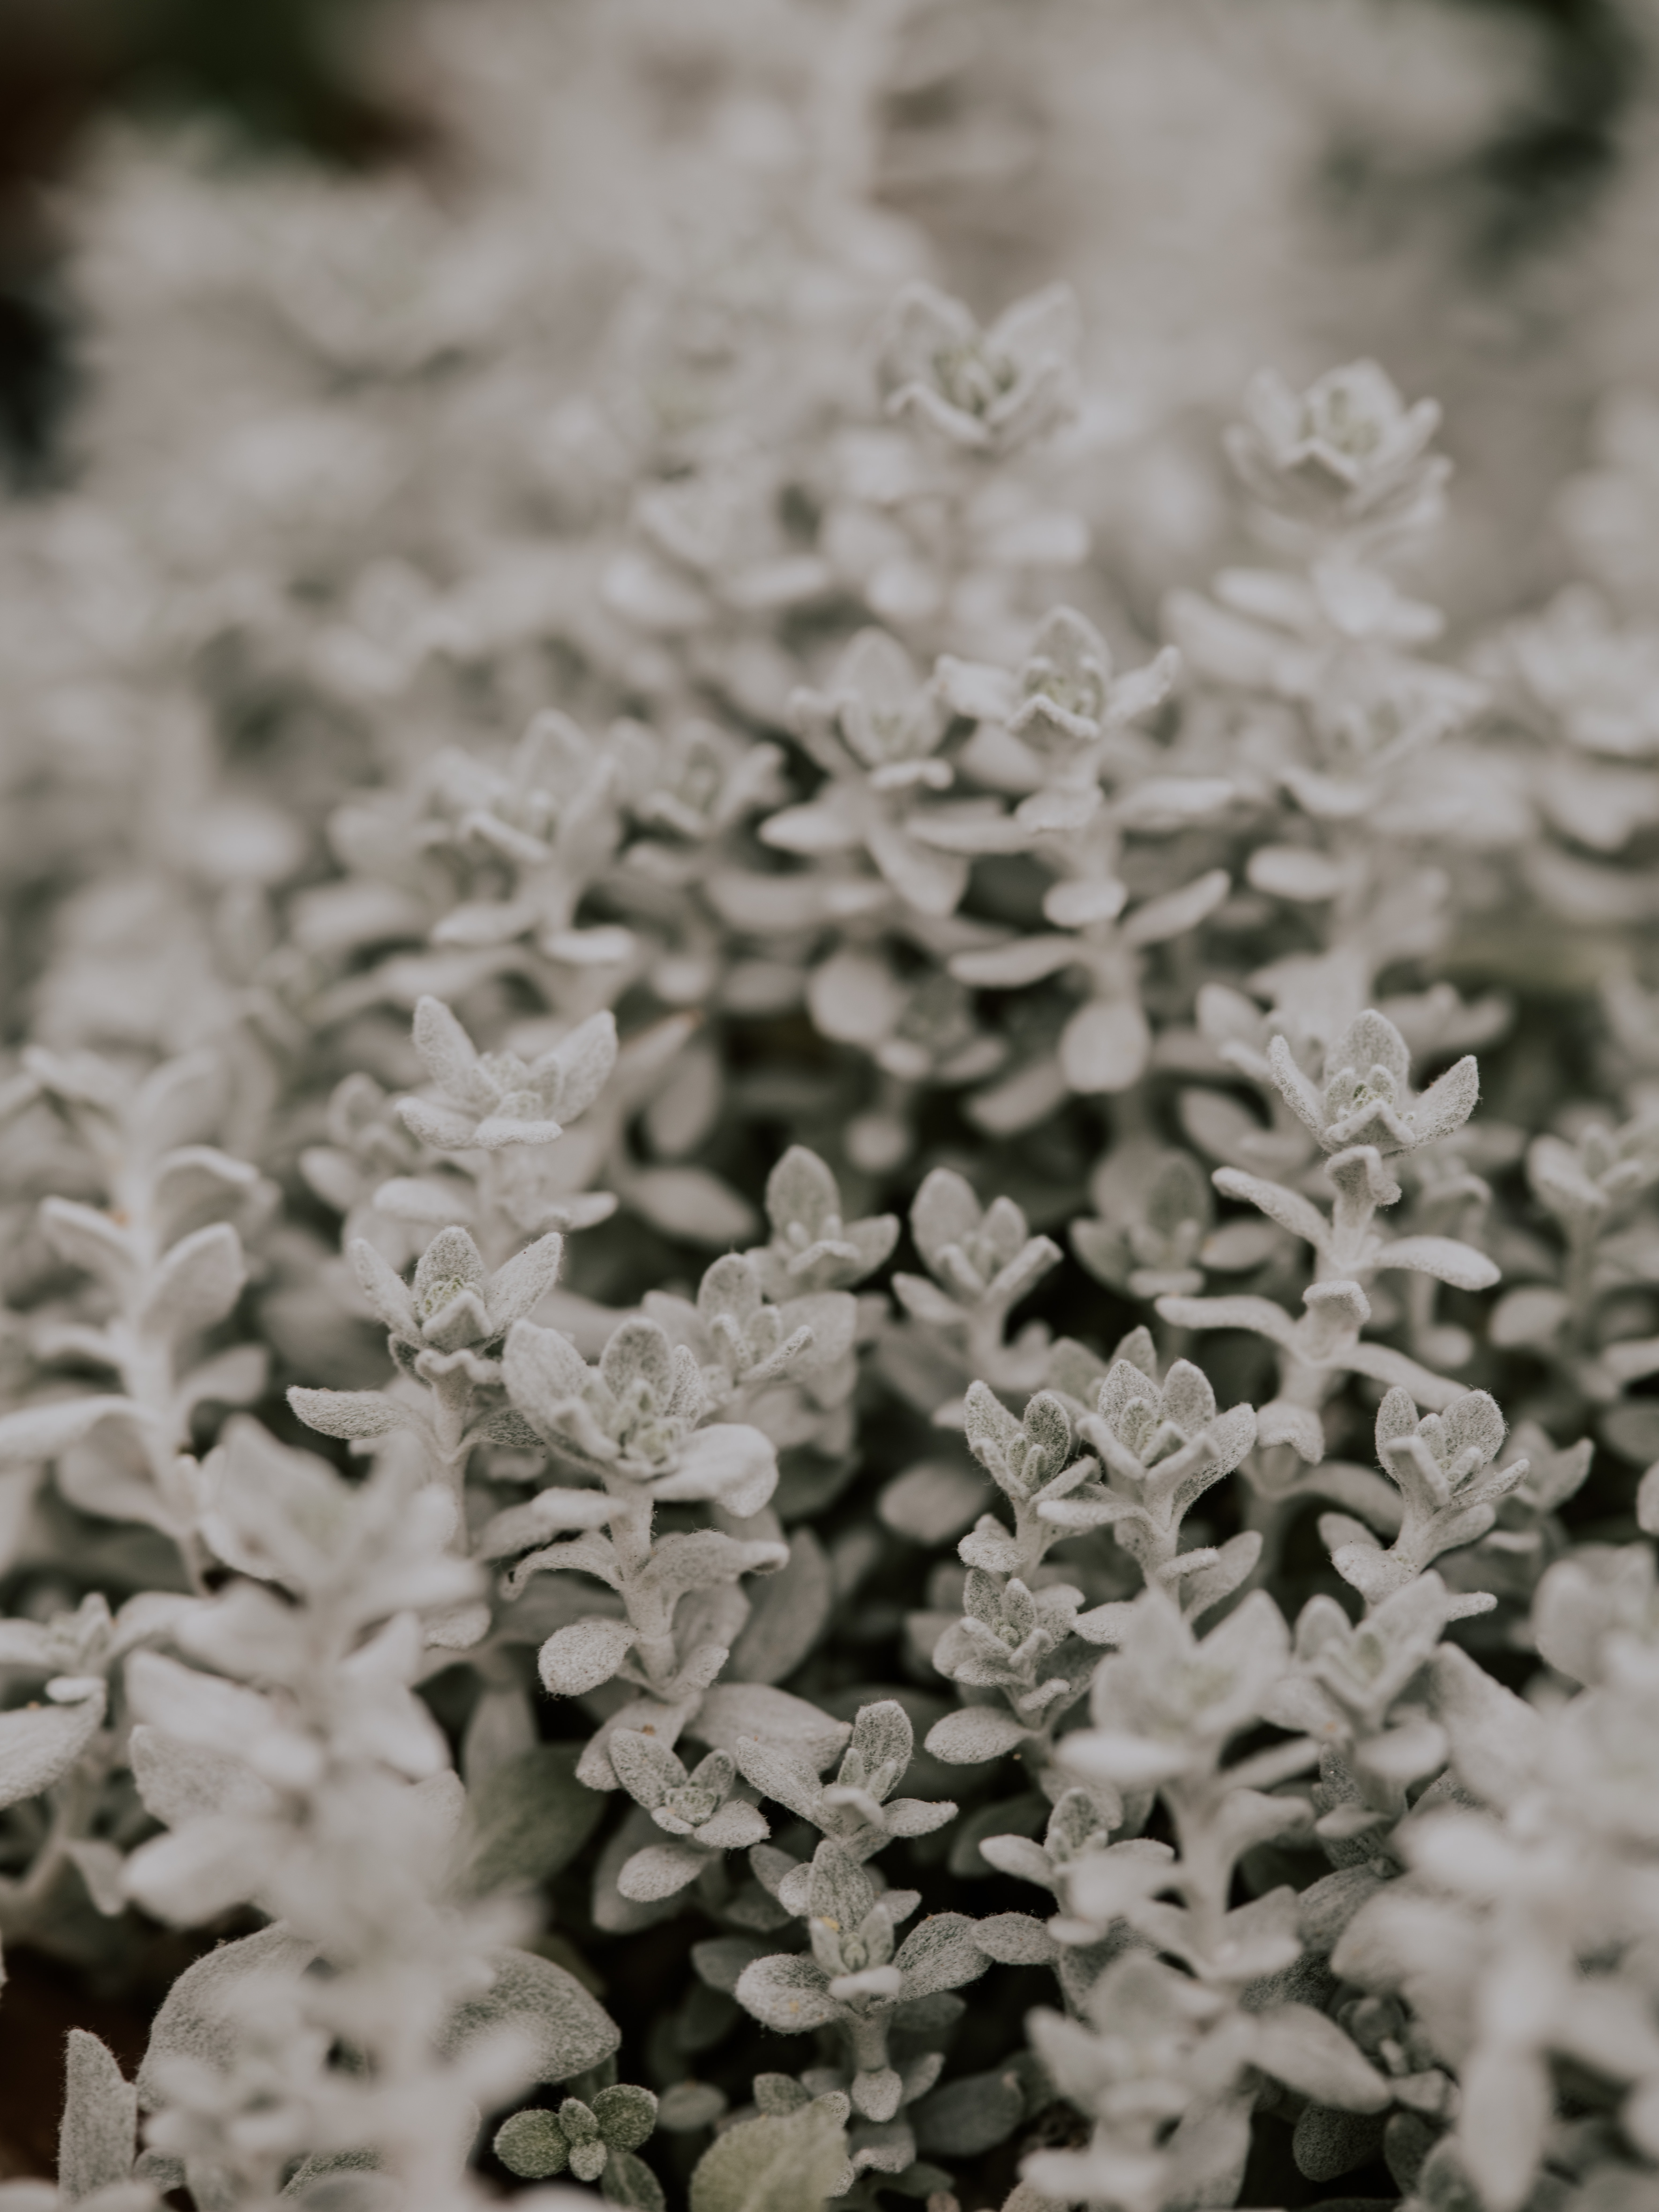 close-up photography of white plant